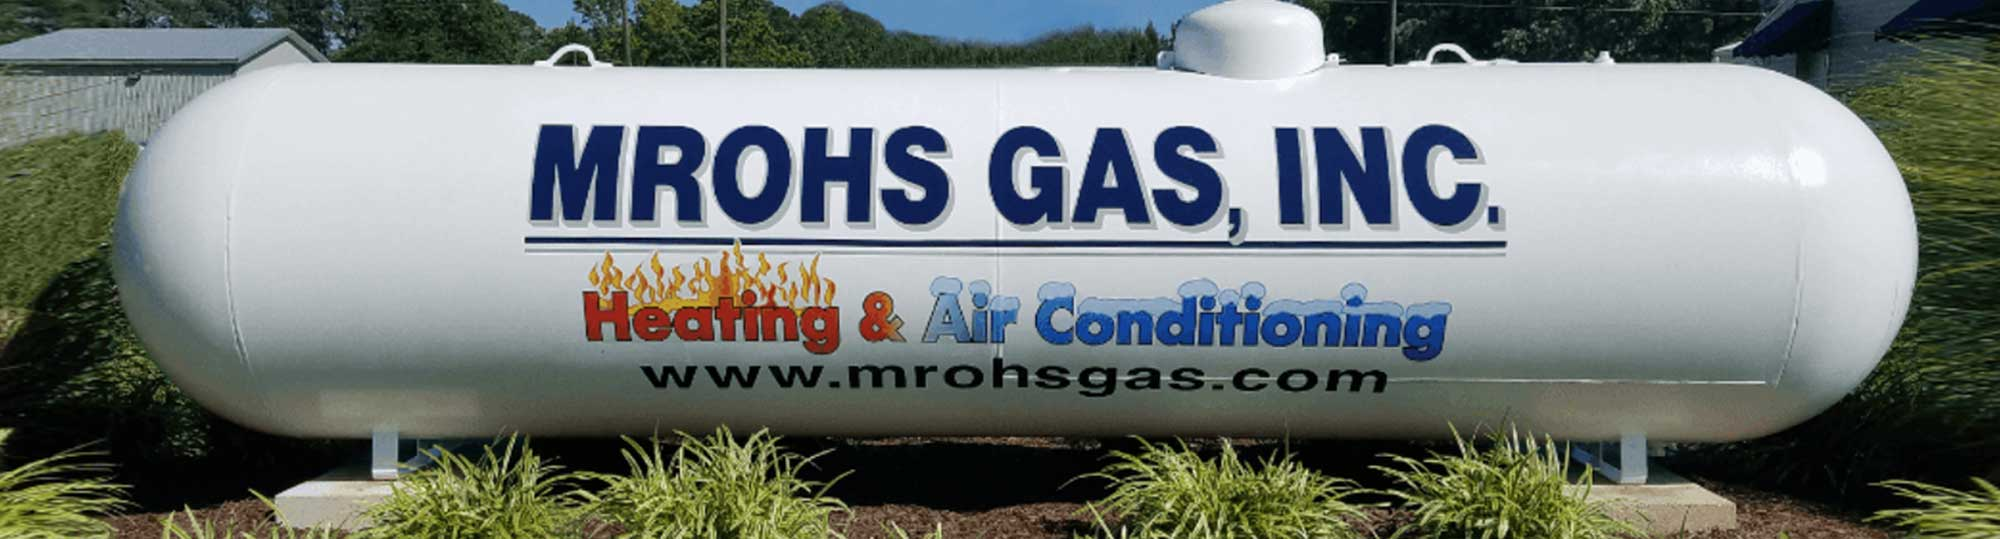 Mrohs Gas, Inc. Container